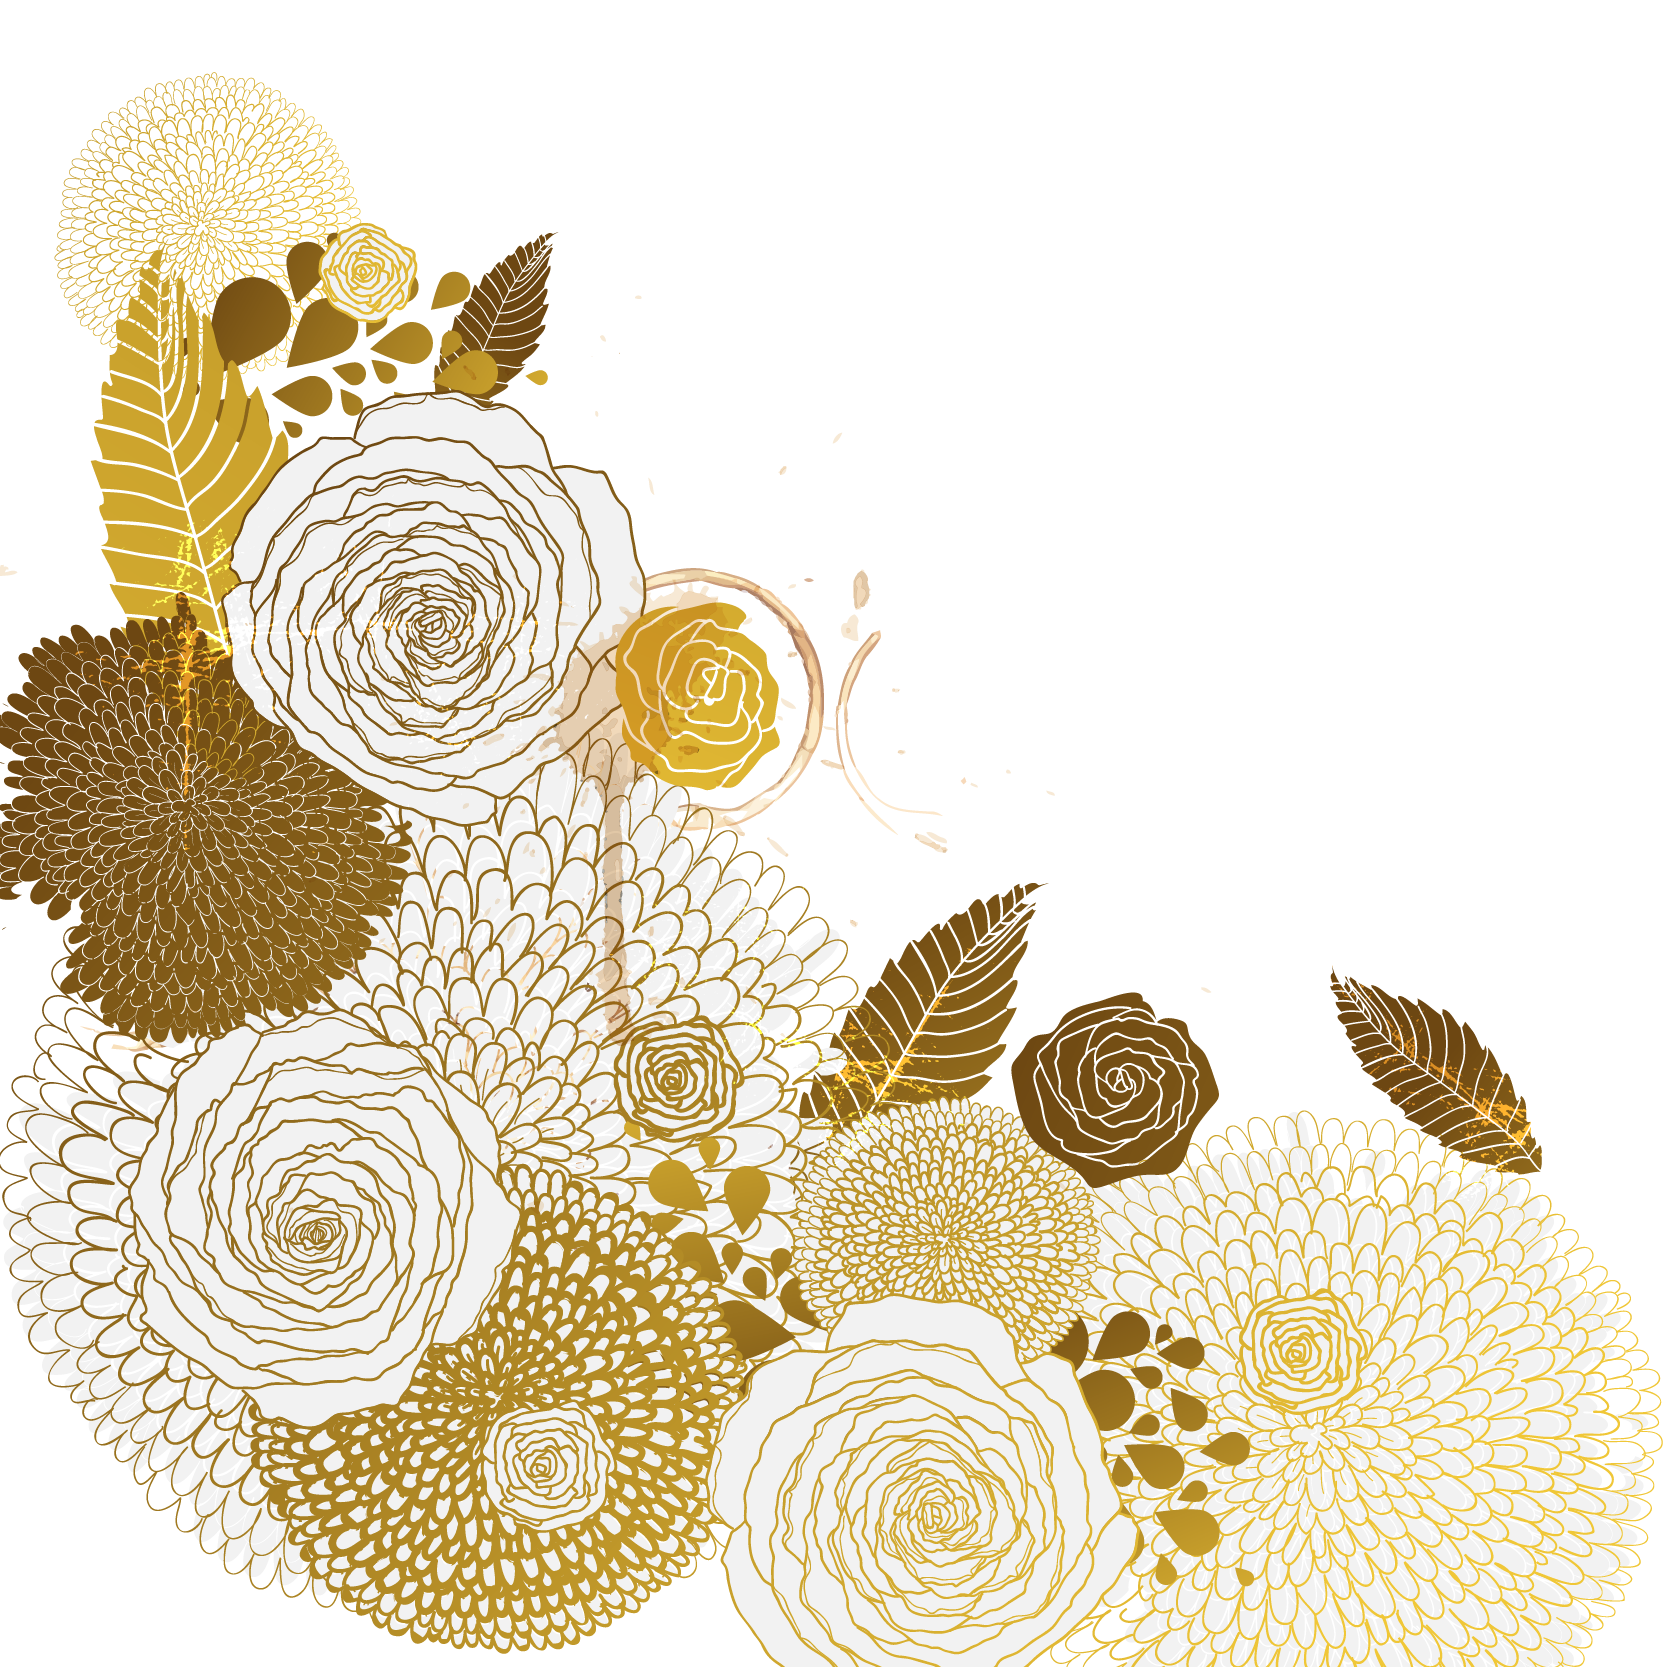 Clam vector golden. Flower euclidean pattern transprent